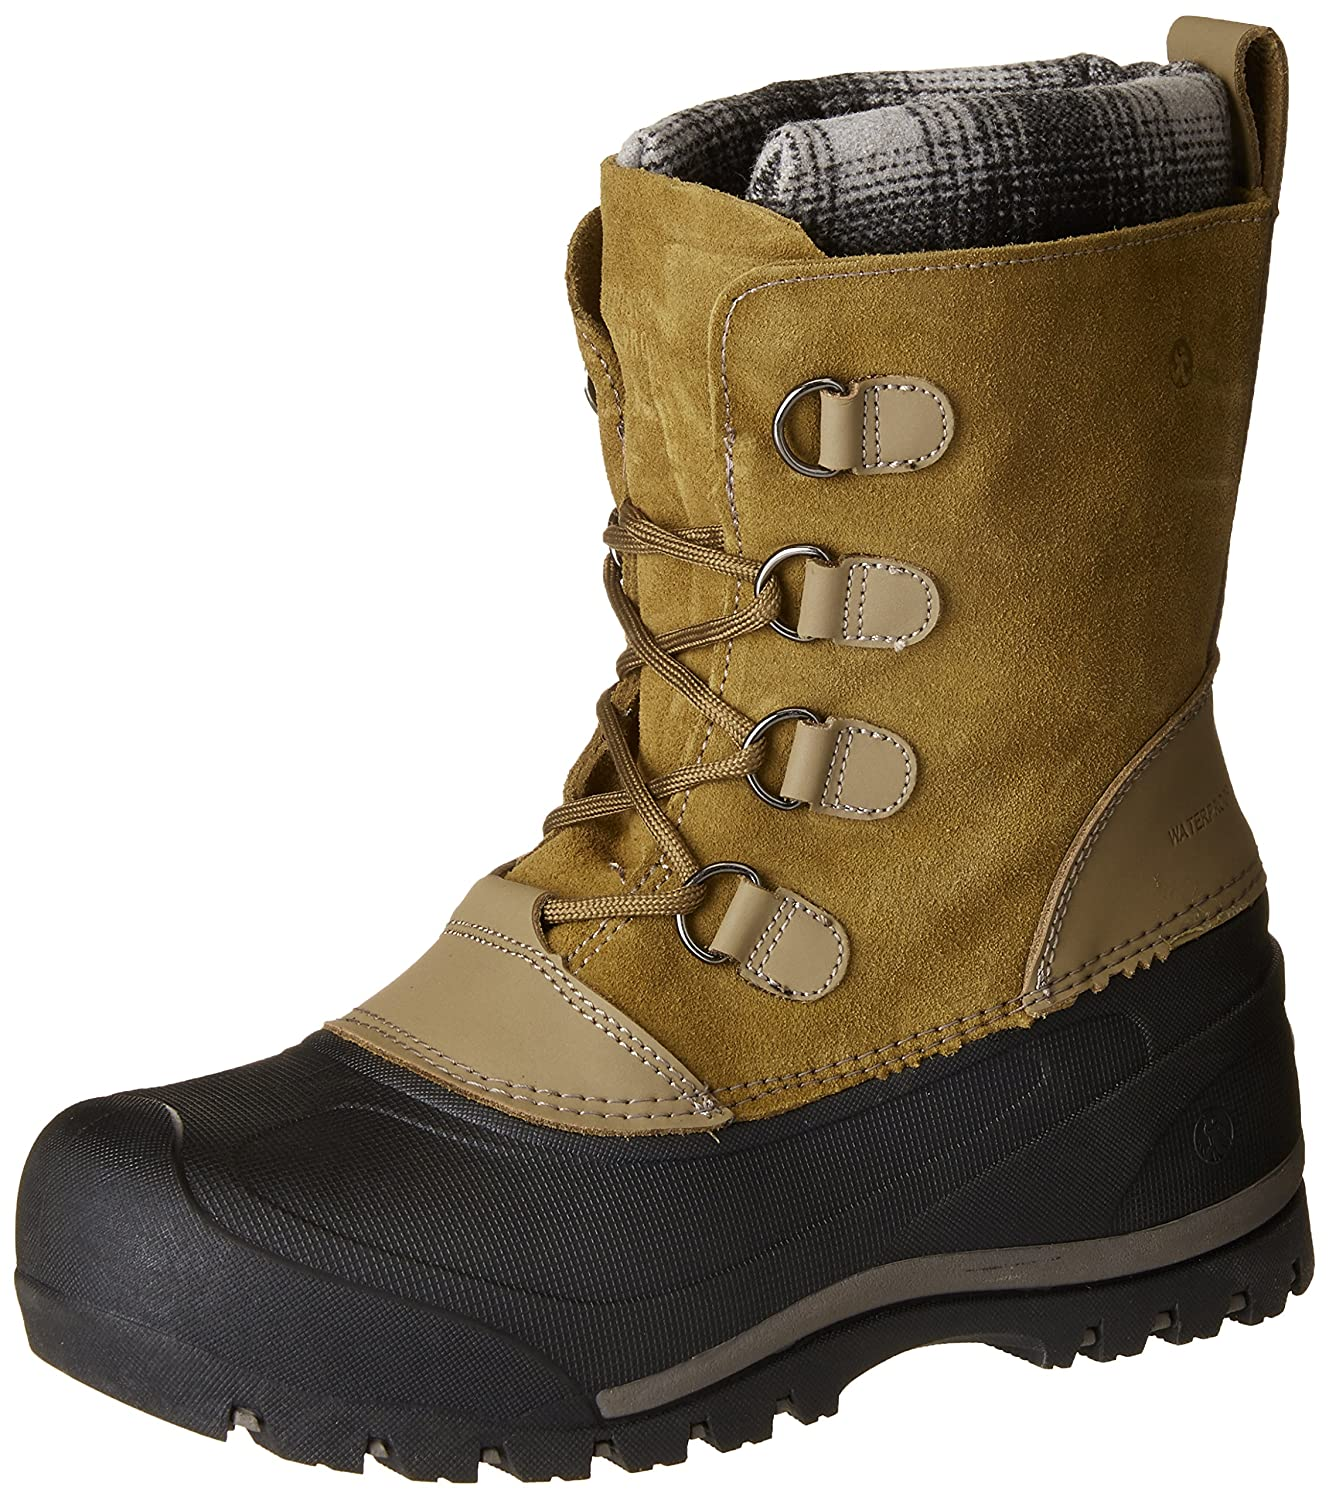 Northside Kids' Back Country Snow Boot BACK COUNTRY - K